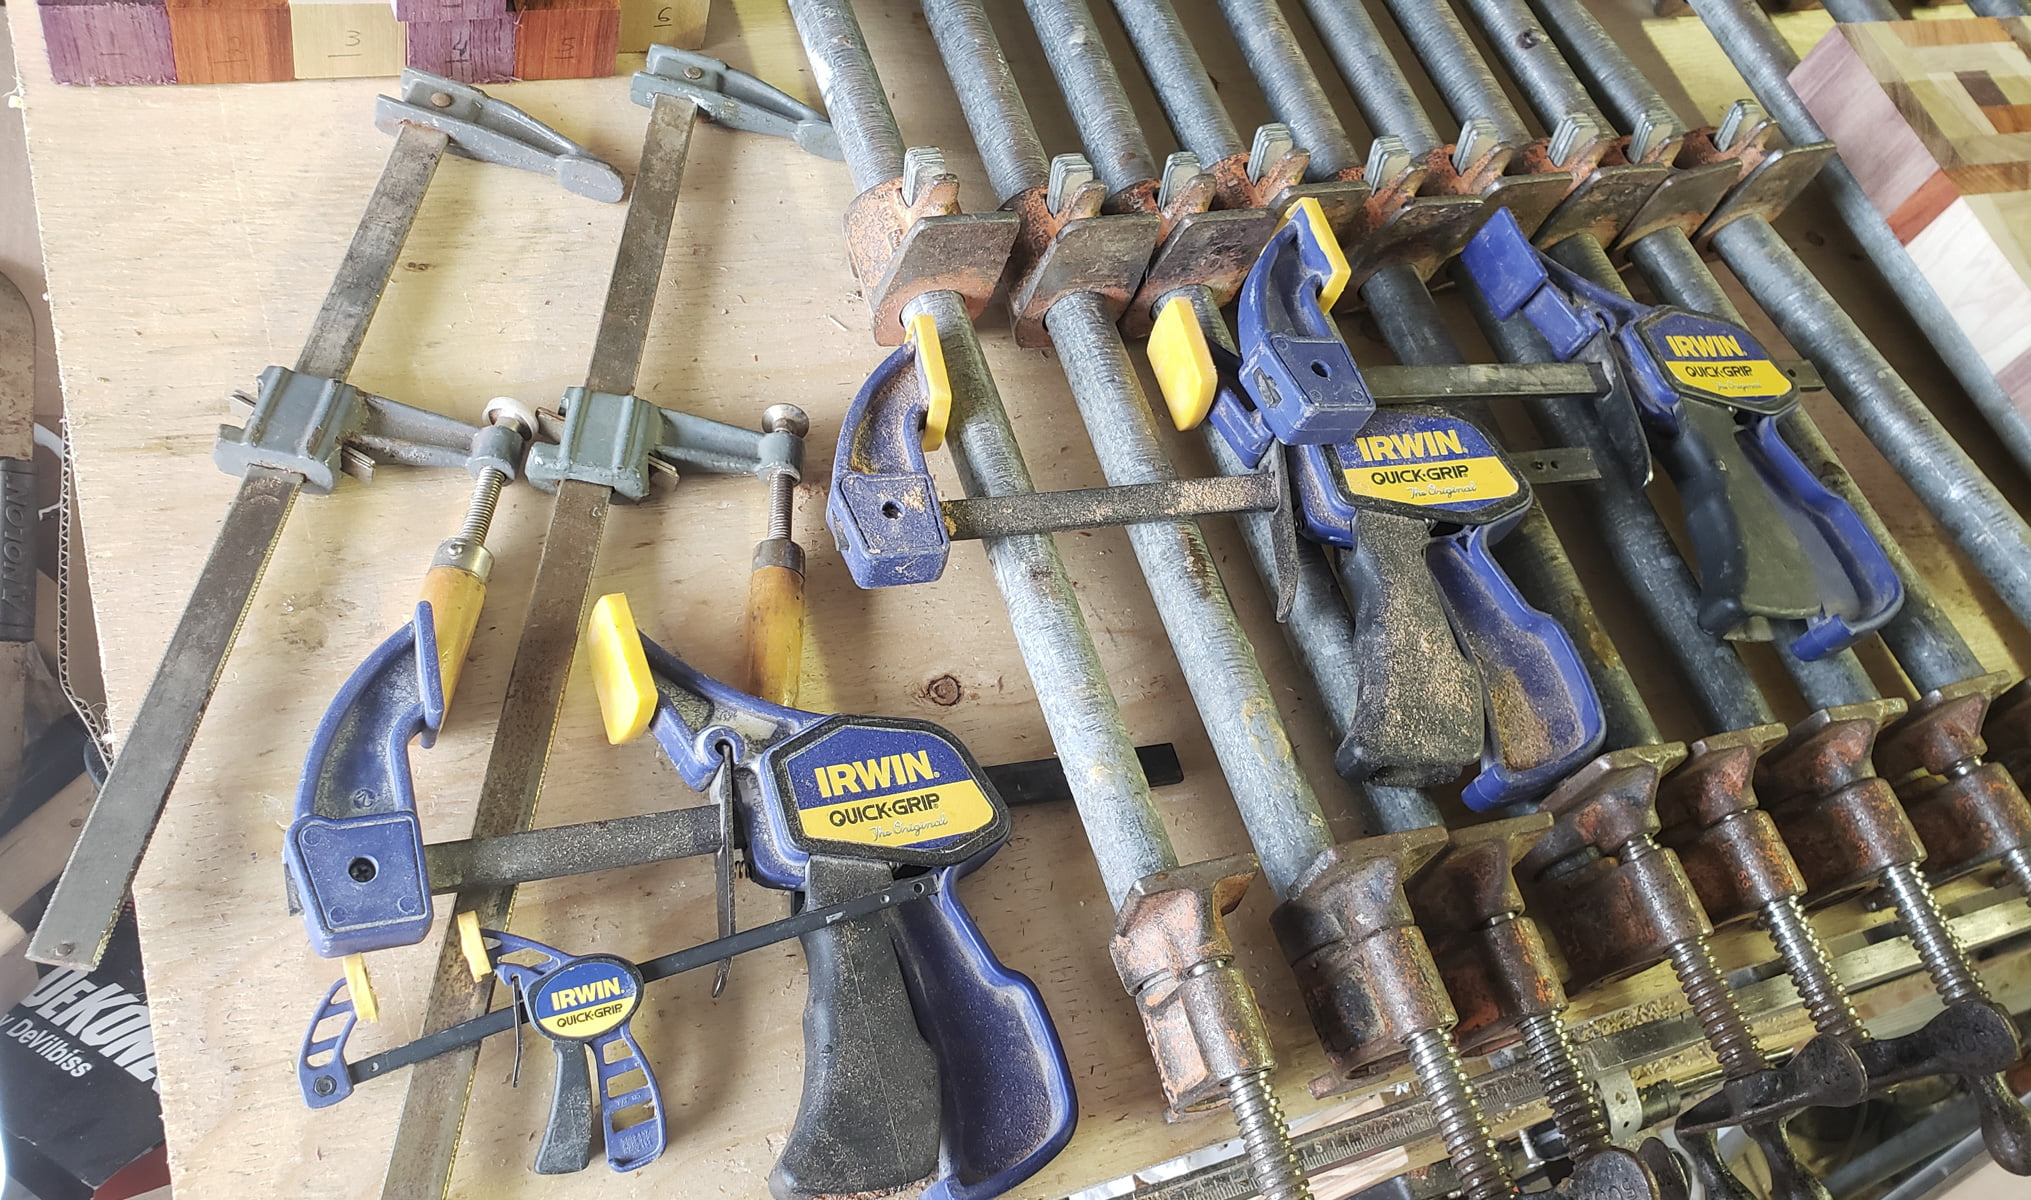 Various clamps spread on a table.